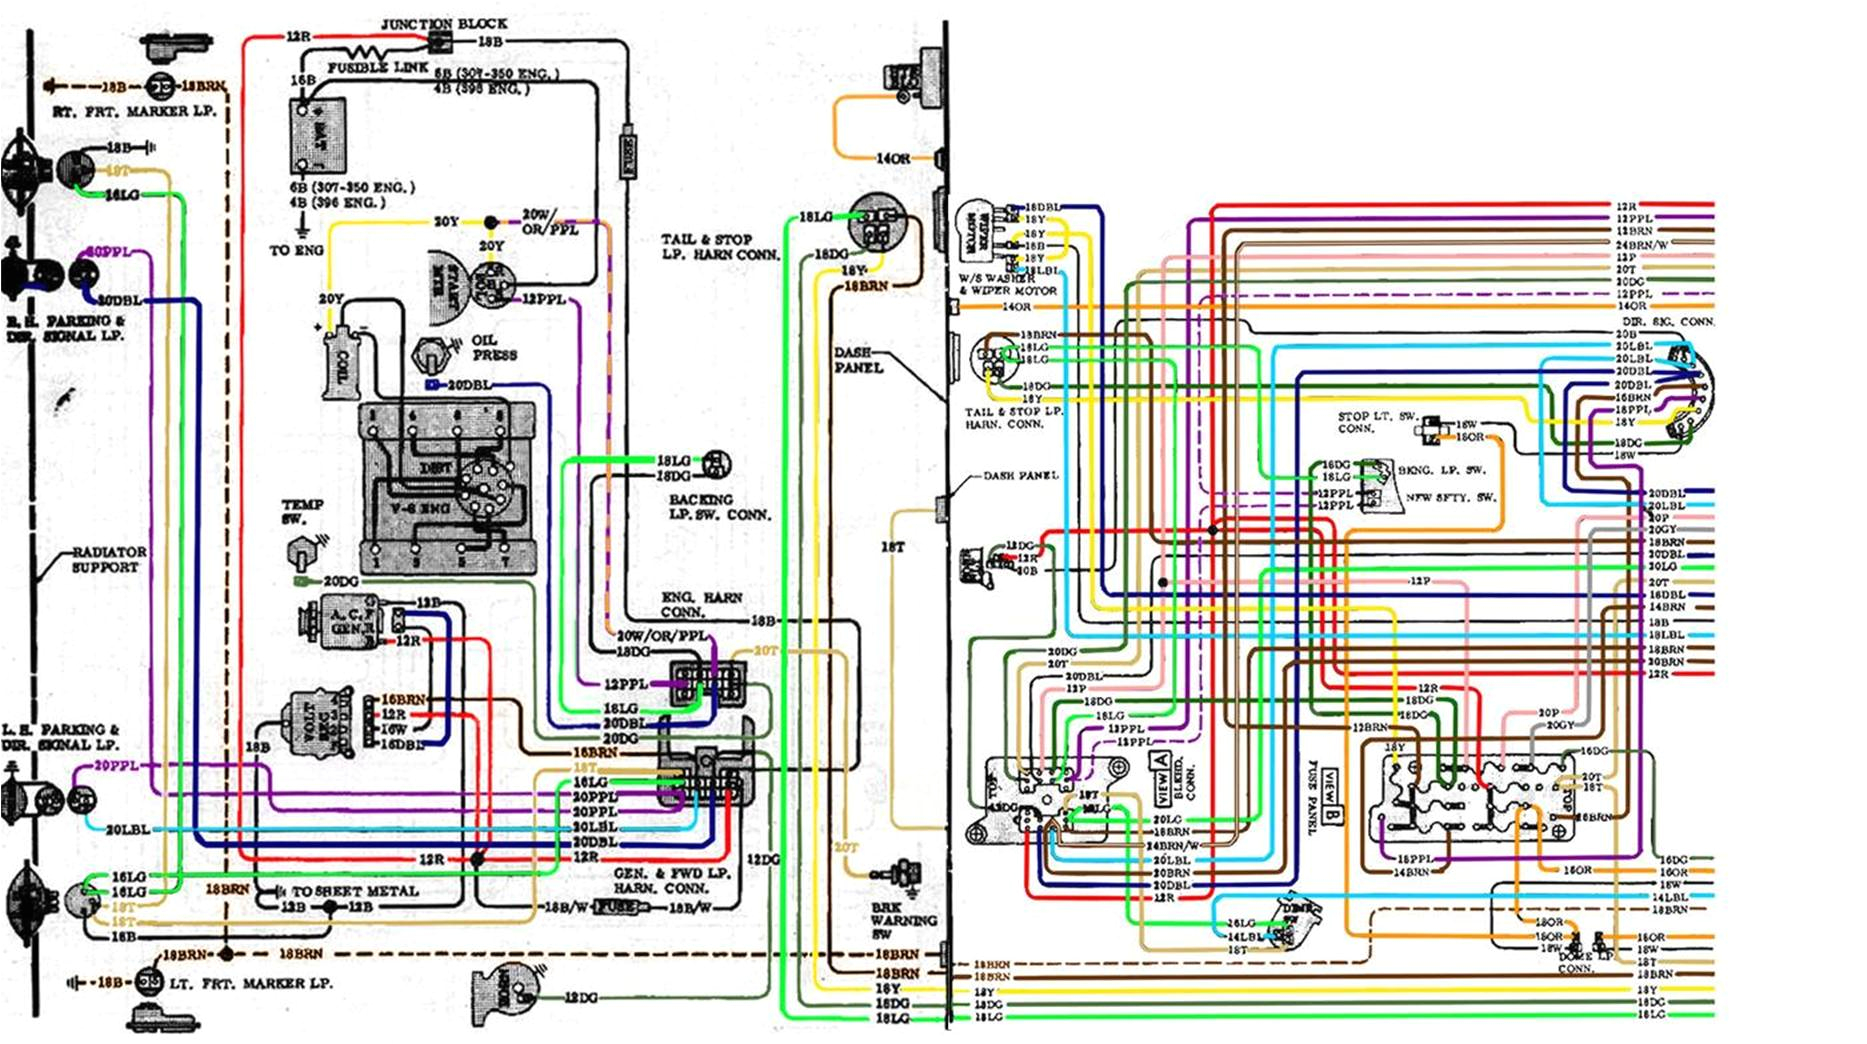 72 f250 wiring diagram only wiring library 67 72 chevy wiring diagram 1977 chevy c10 wiring